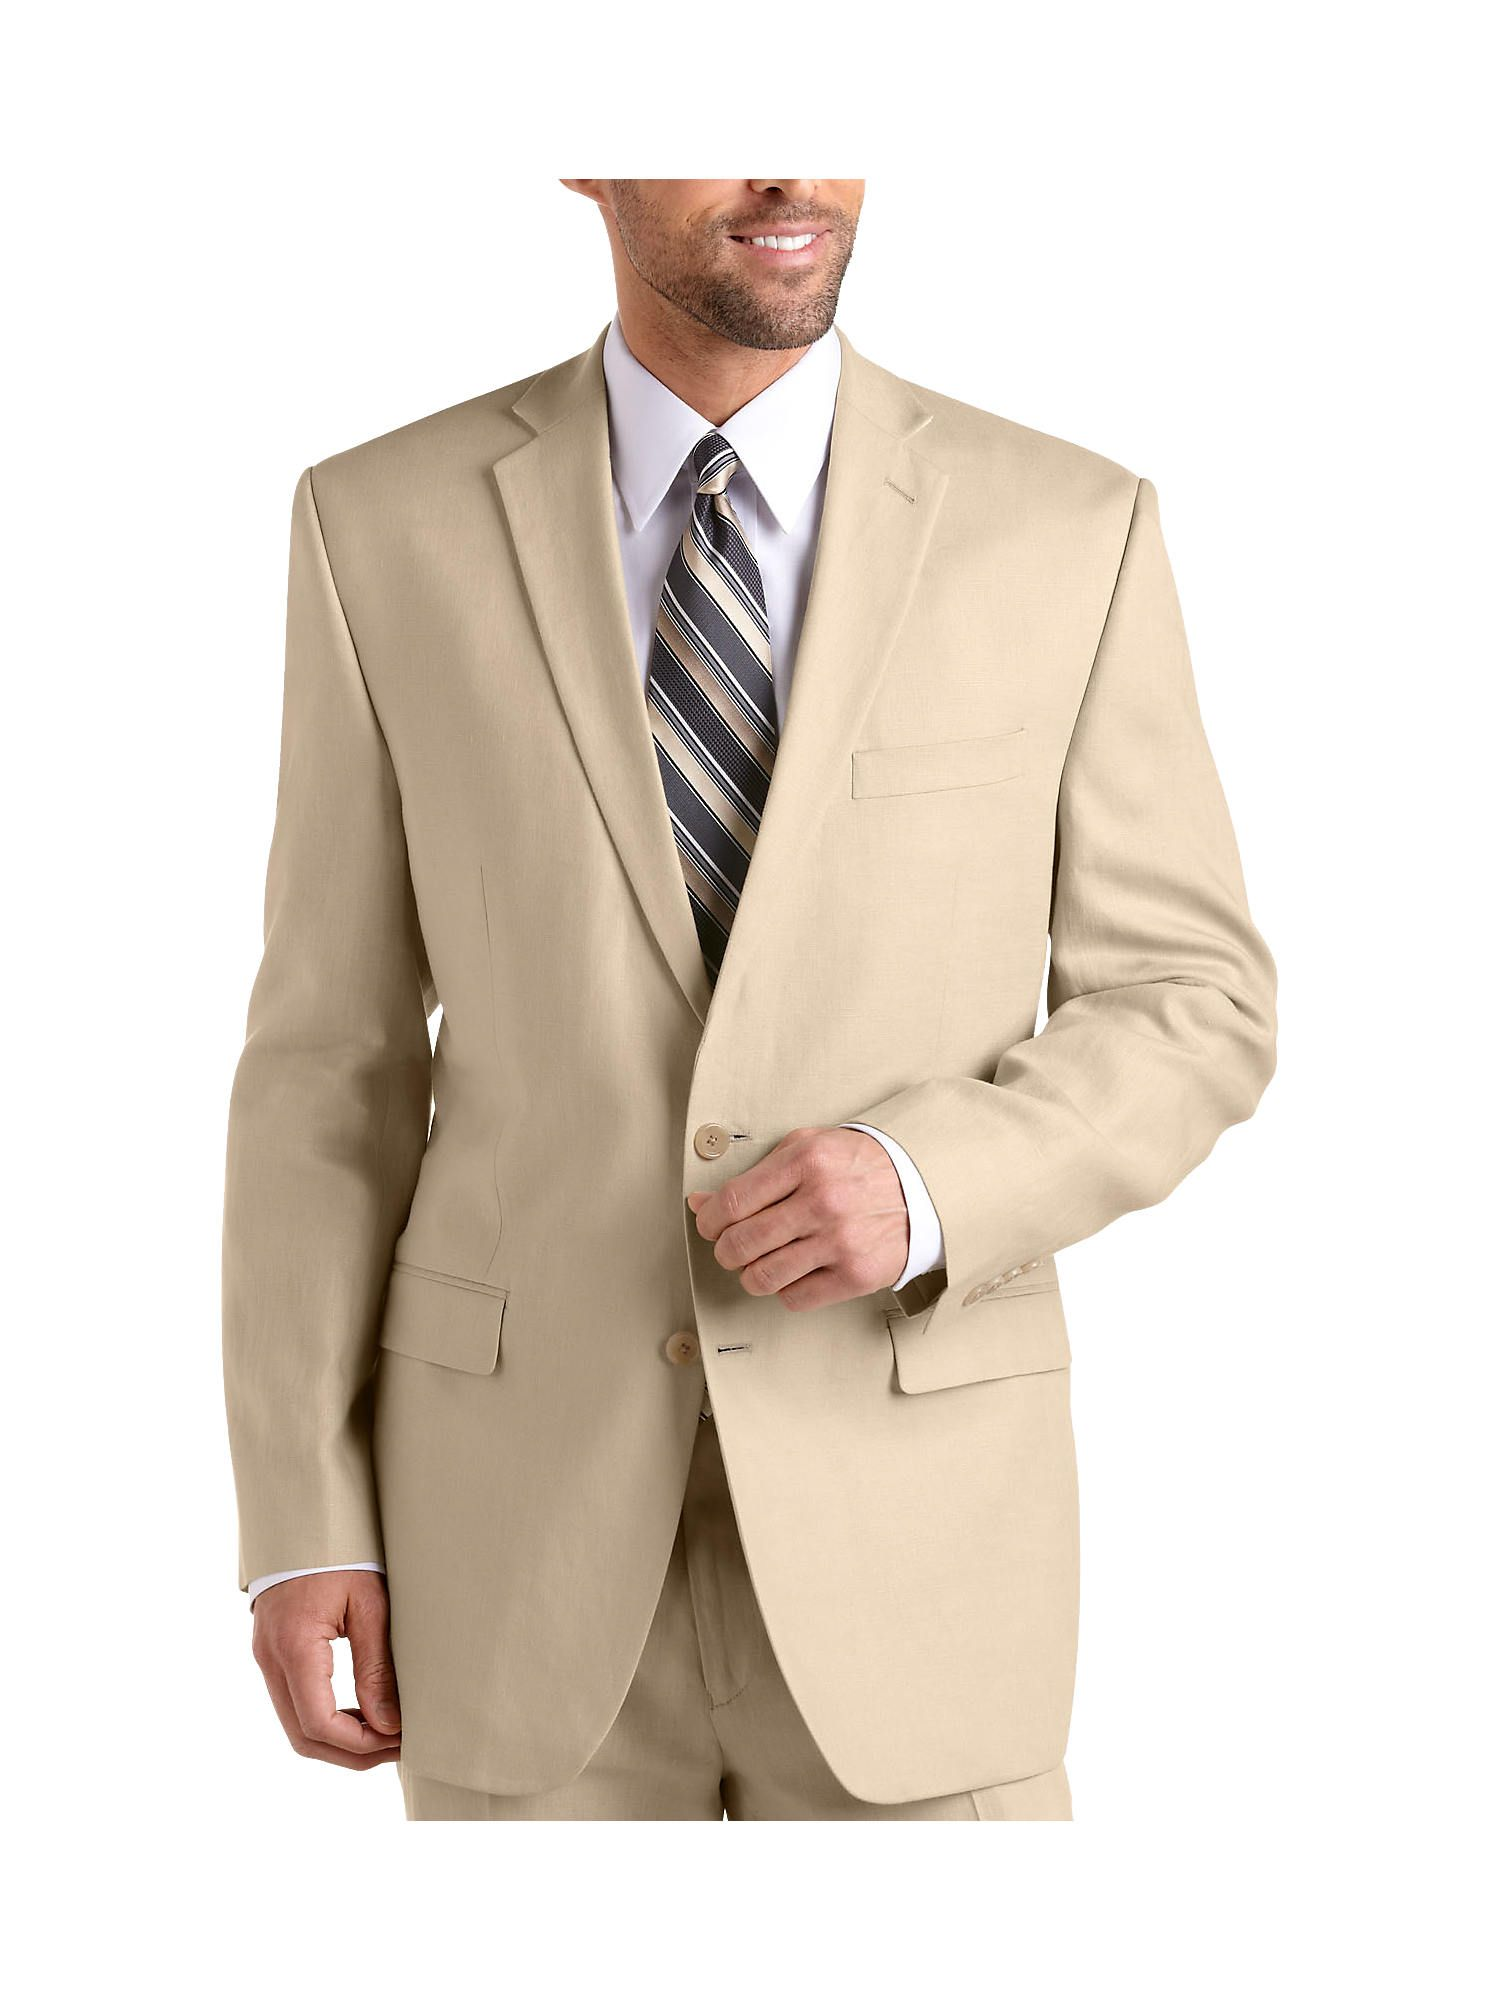 fcef6ea194 Designed in high-quality 100% linen, this suit coat lets you choose jacket